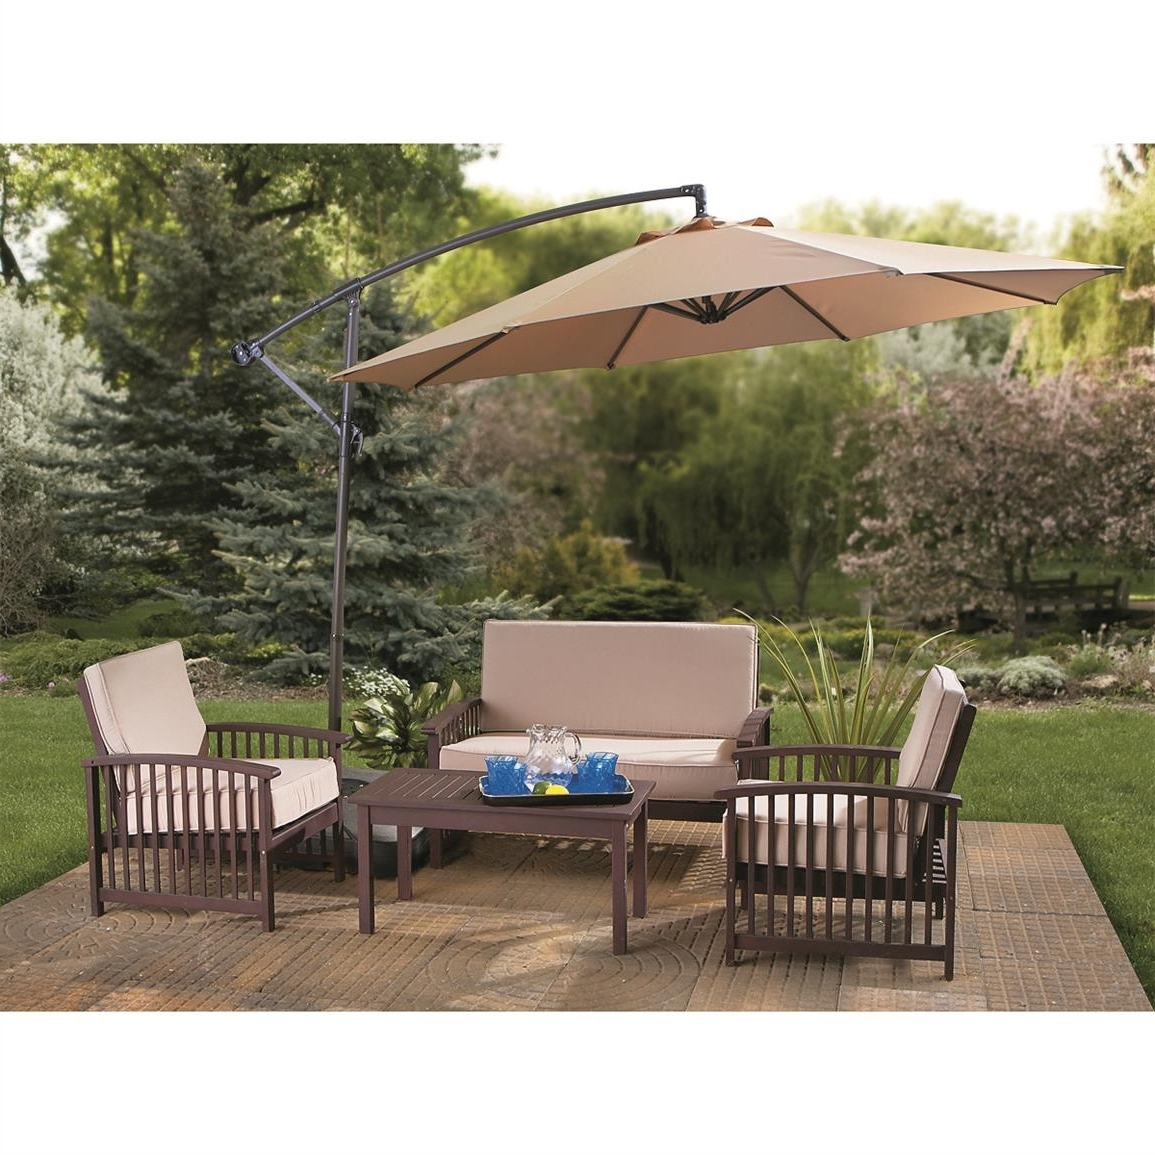 Favorite Cantilever Patio Umbrellas Intended For Castlecreek 10' Cantilever Patio Umbrella – 234178, Patio Umbrellas (View 5 of 20)